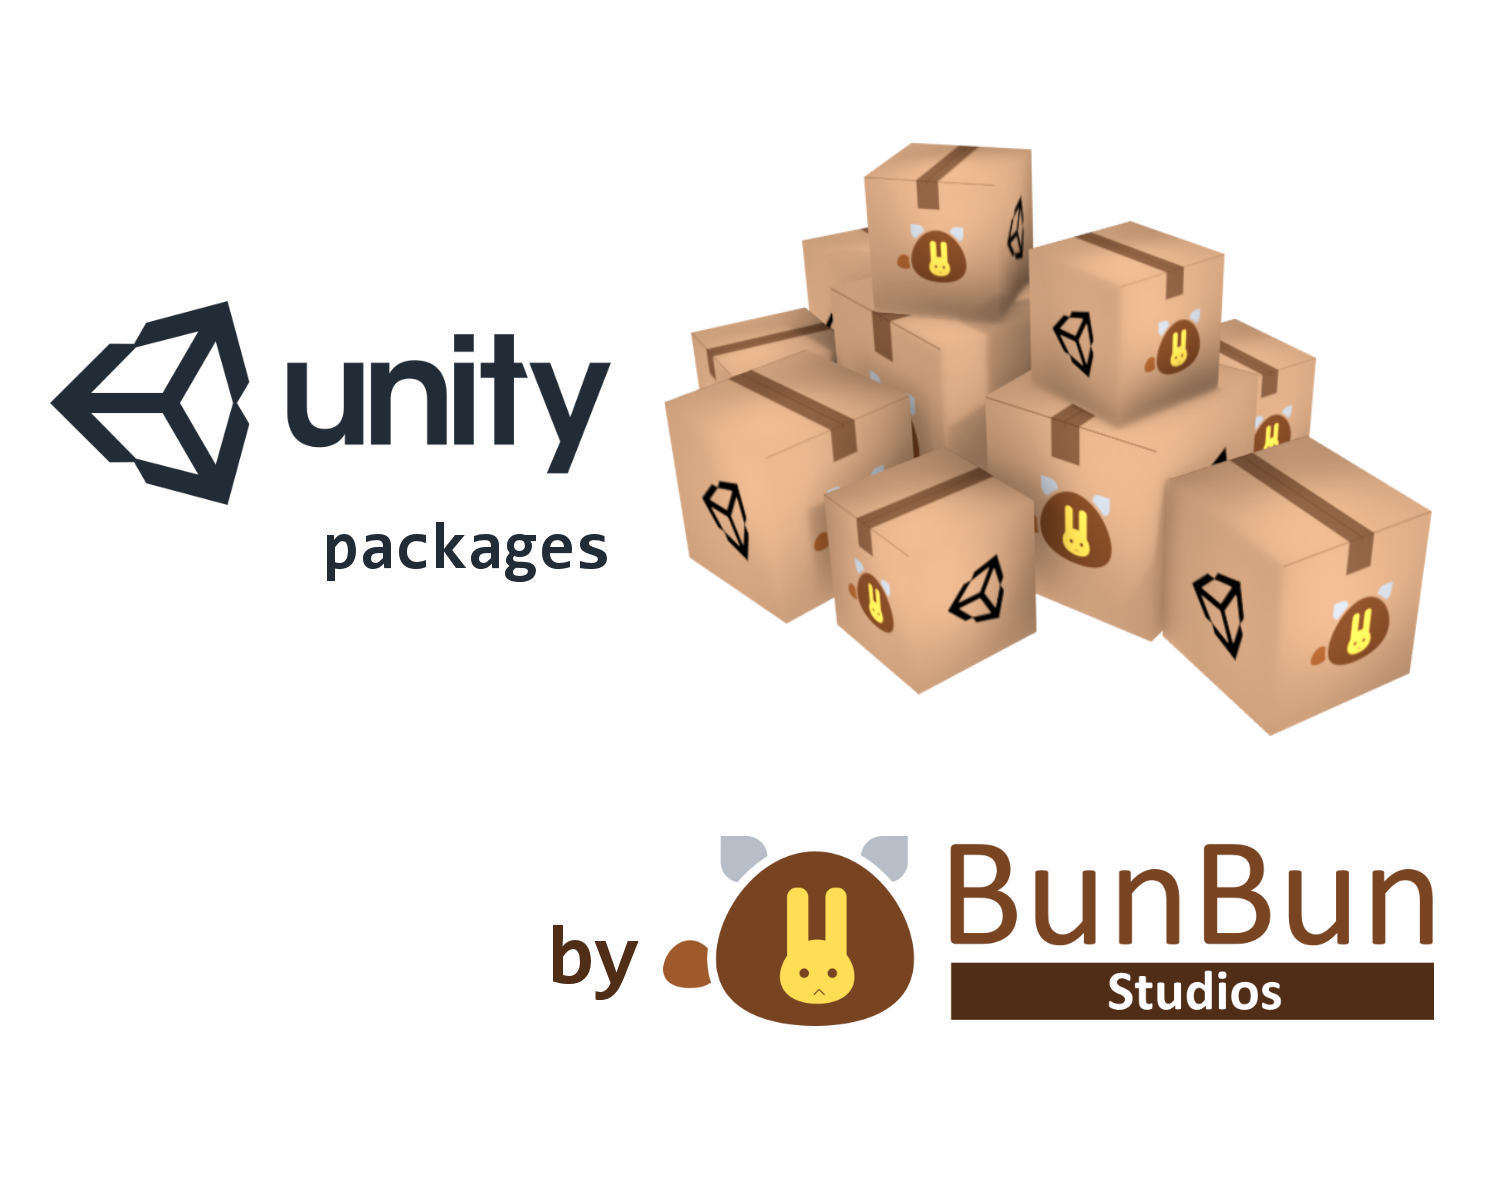 Modular d game engine. Clipart explosion unity